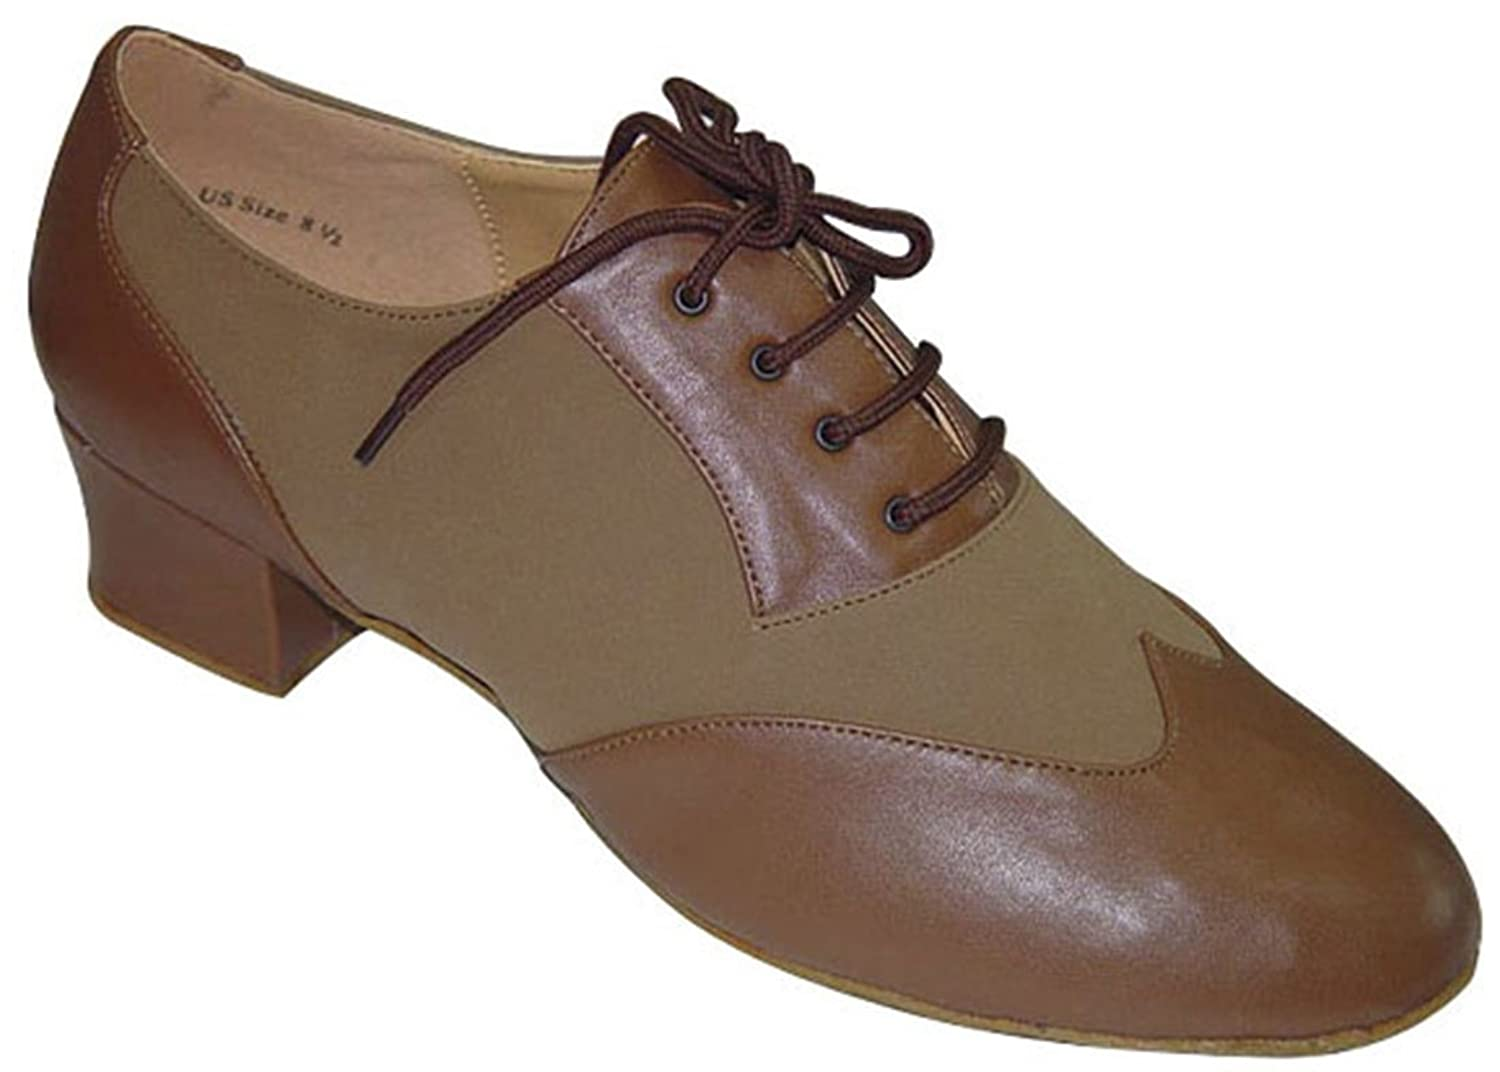 Retro Style Dance Shoes Mens Ballroom Salsa Wedding Competition Dance Shoes The Julio 1.6 Heel - Tan $74.99 AT vintagedancer.com